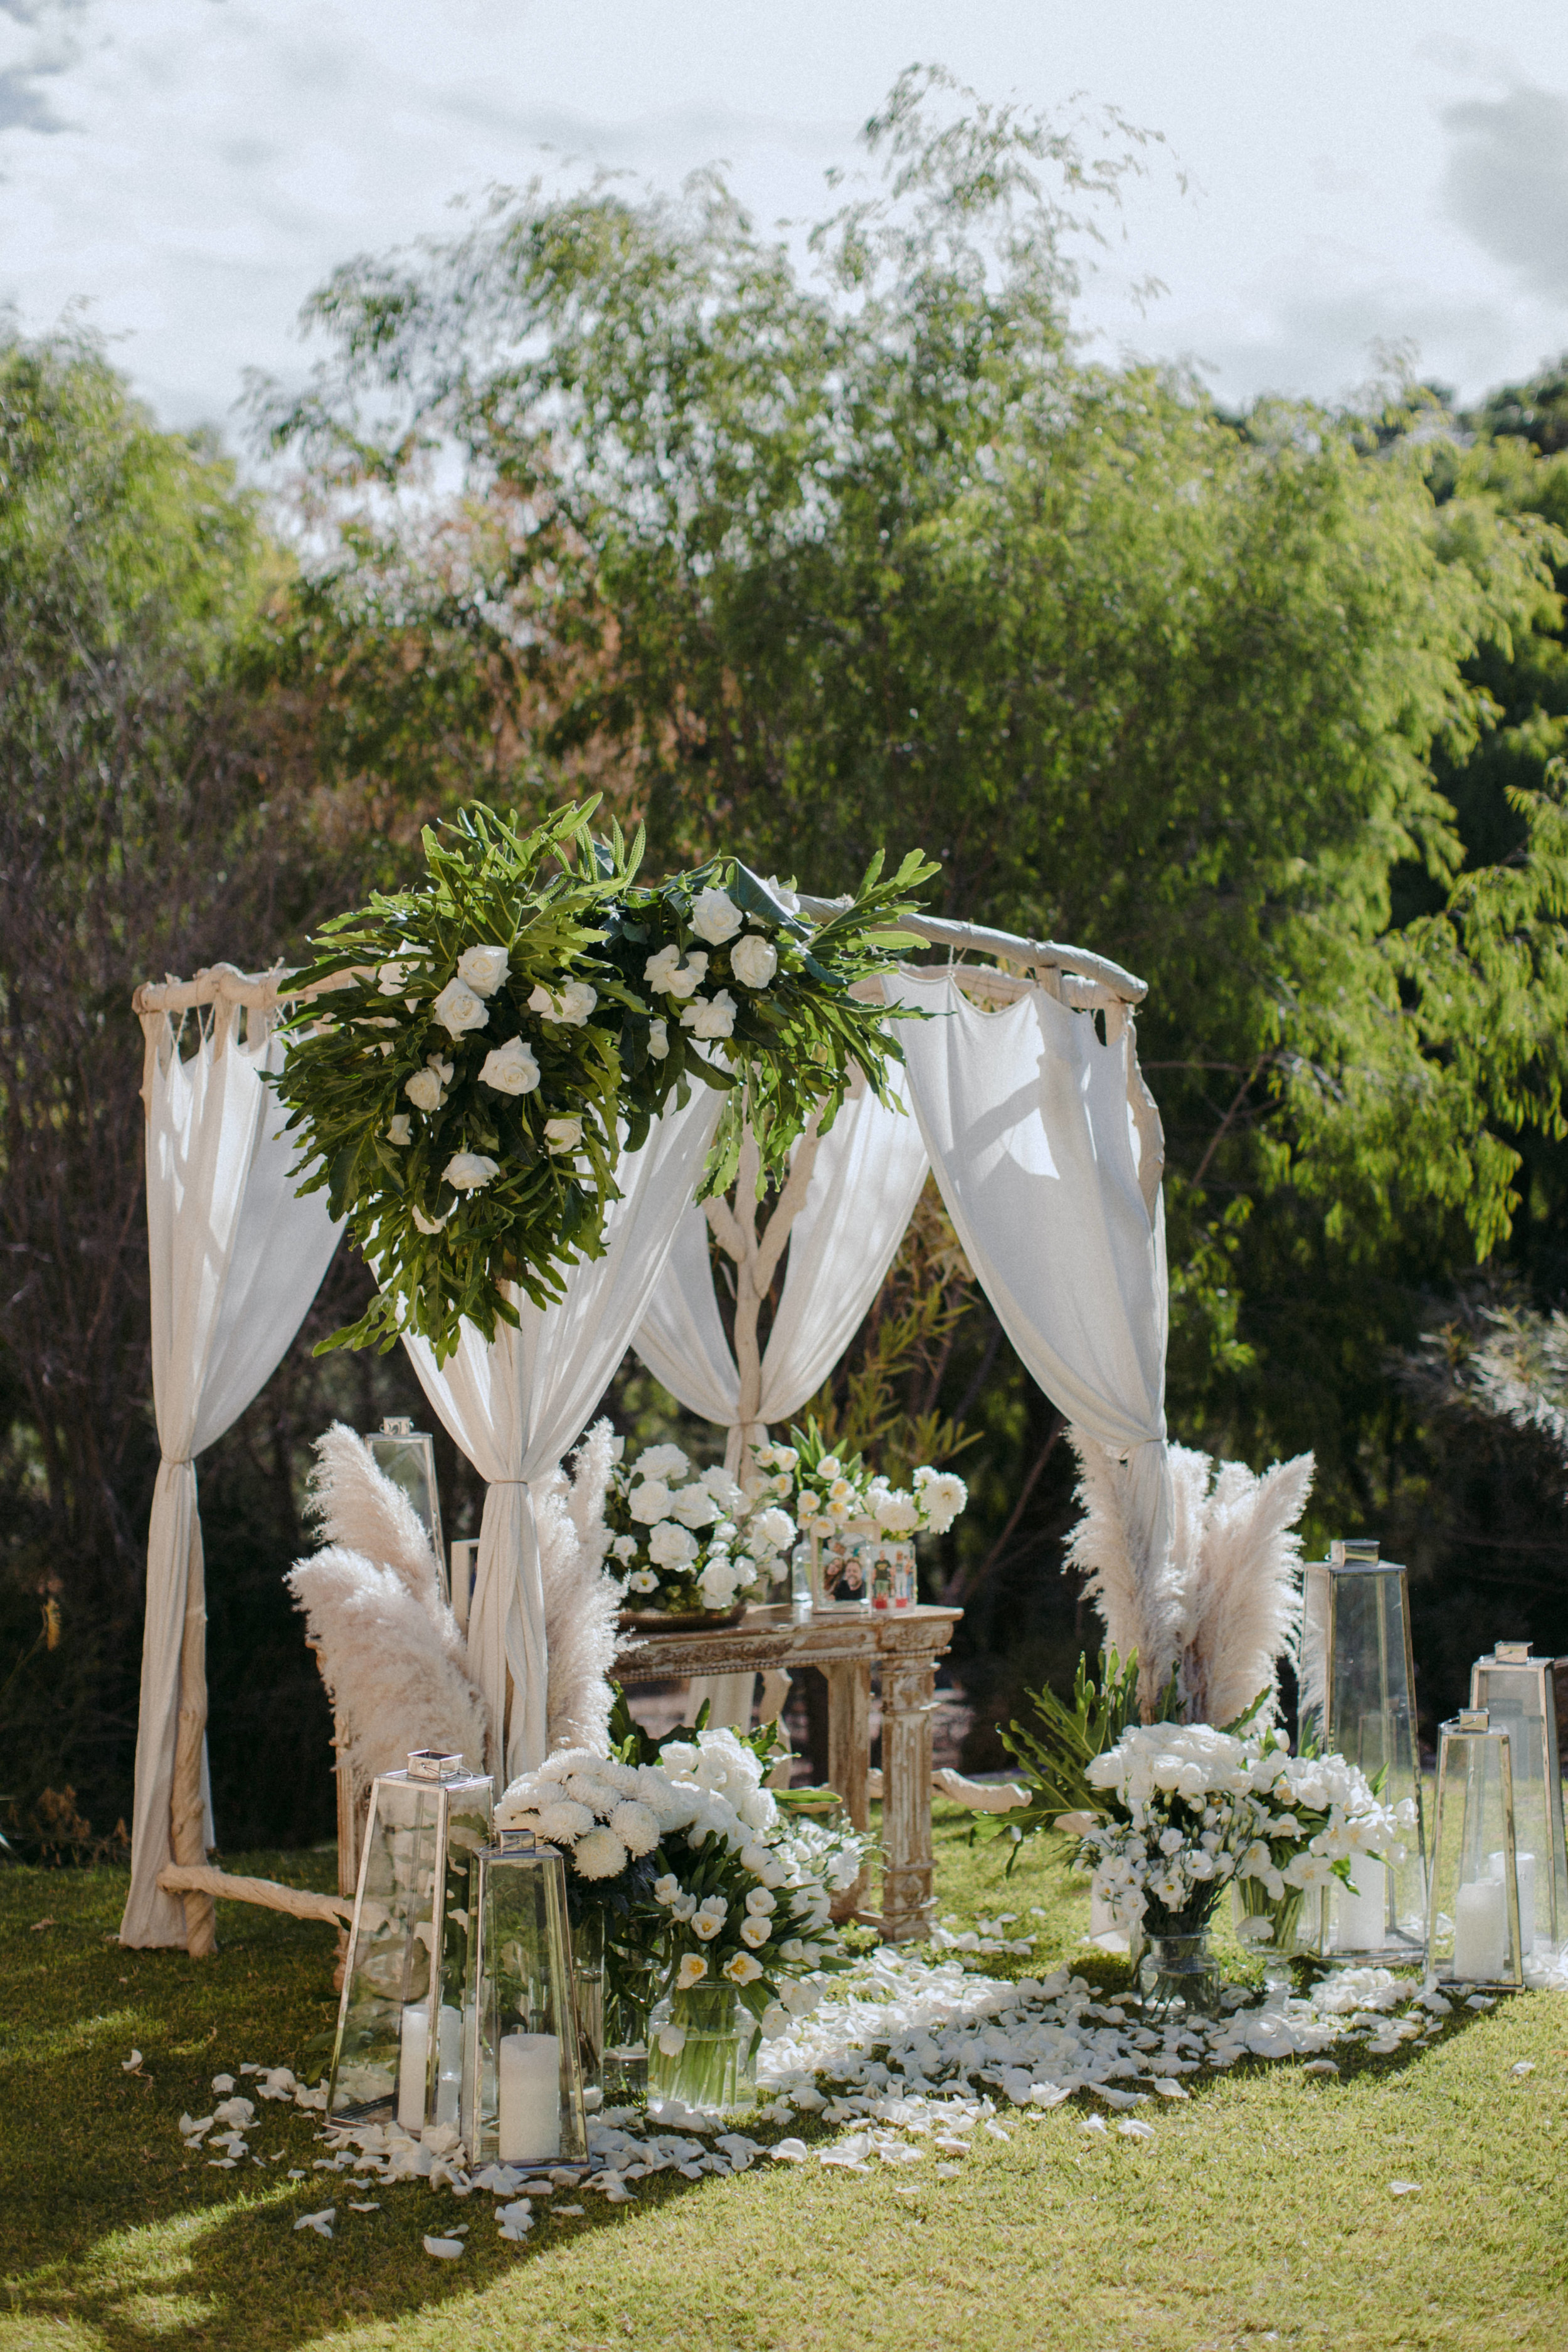 Wedding arches and floral arbours, rose petals and all the romantic details to make your day beautiful...